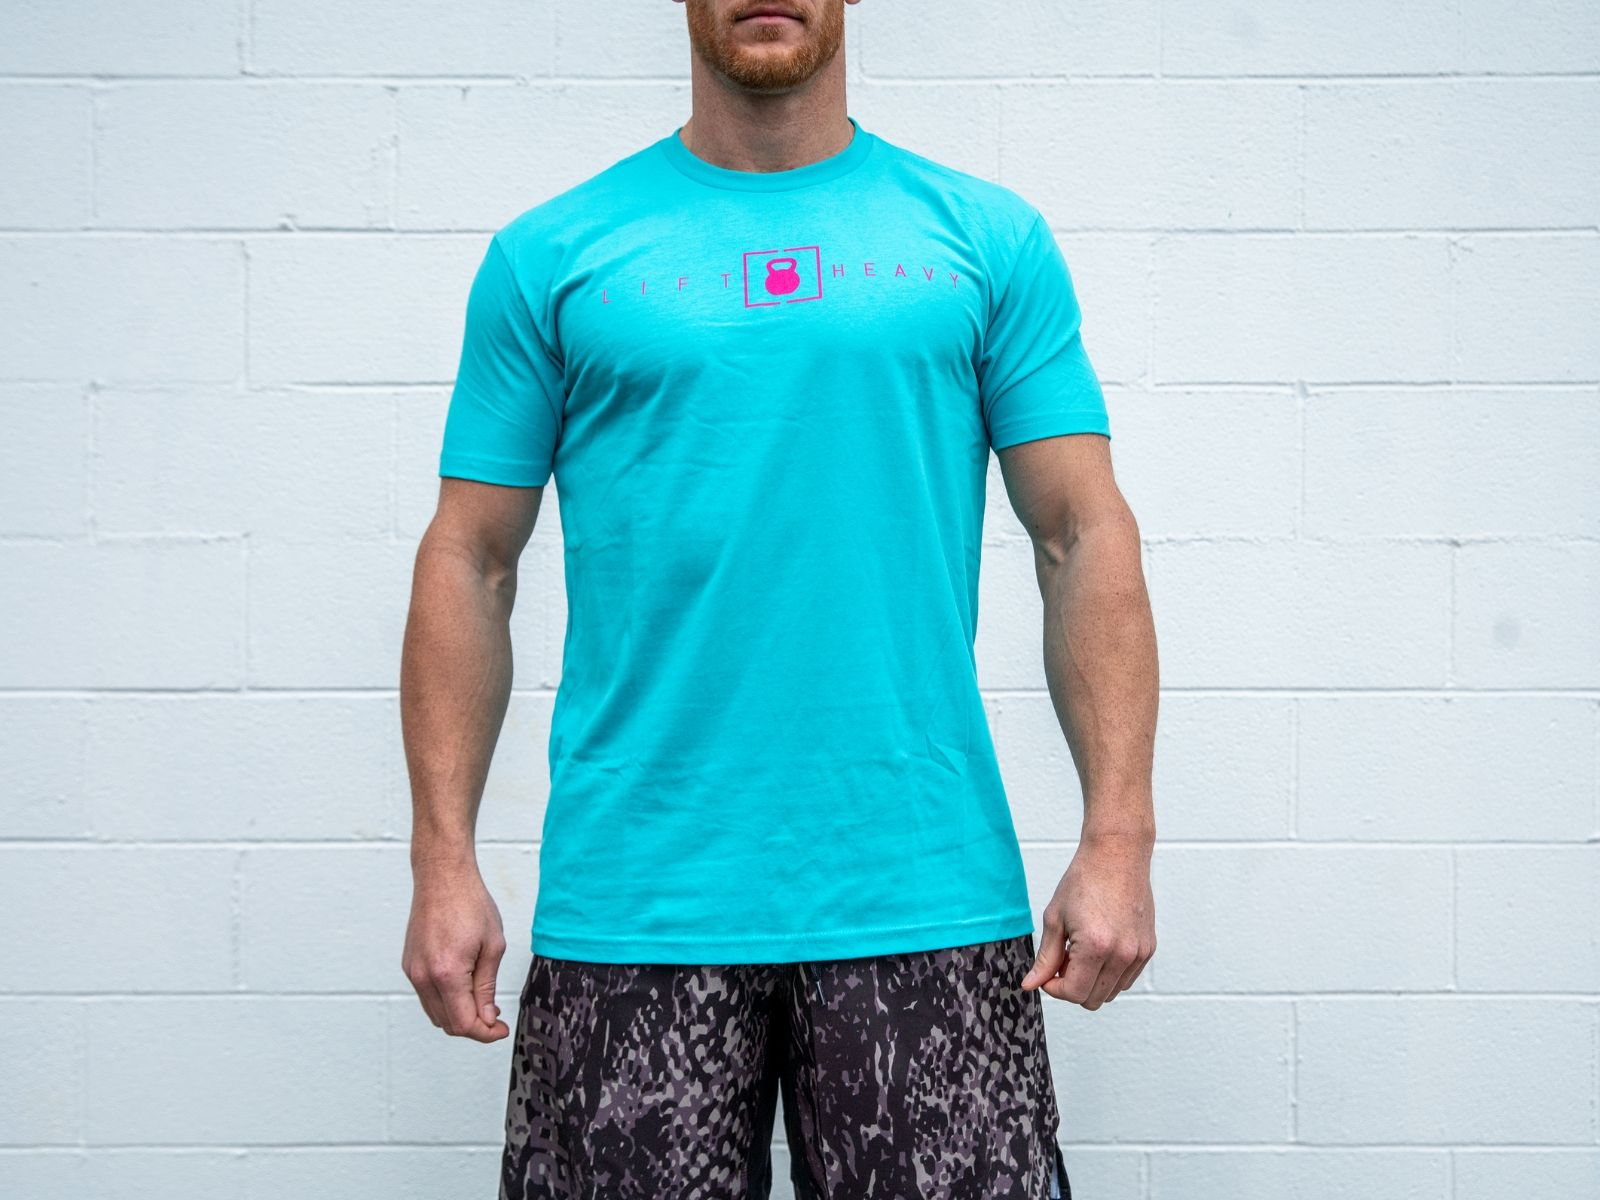 Miami Vibes Lift Heavy T-shirt